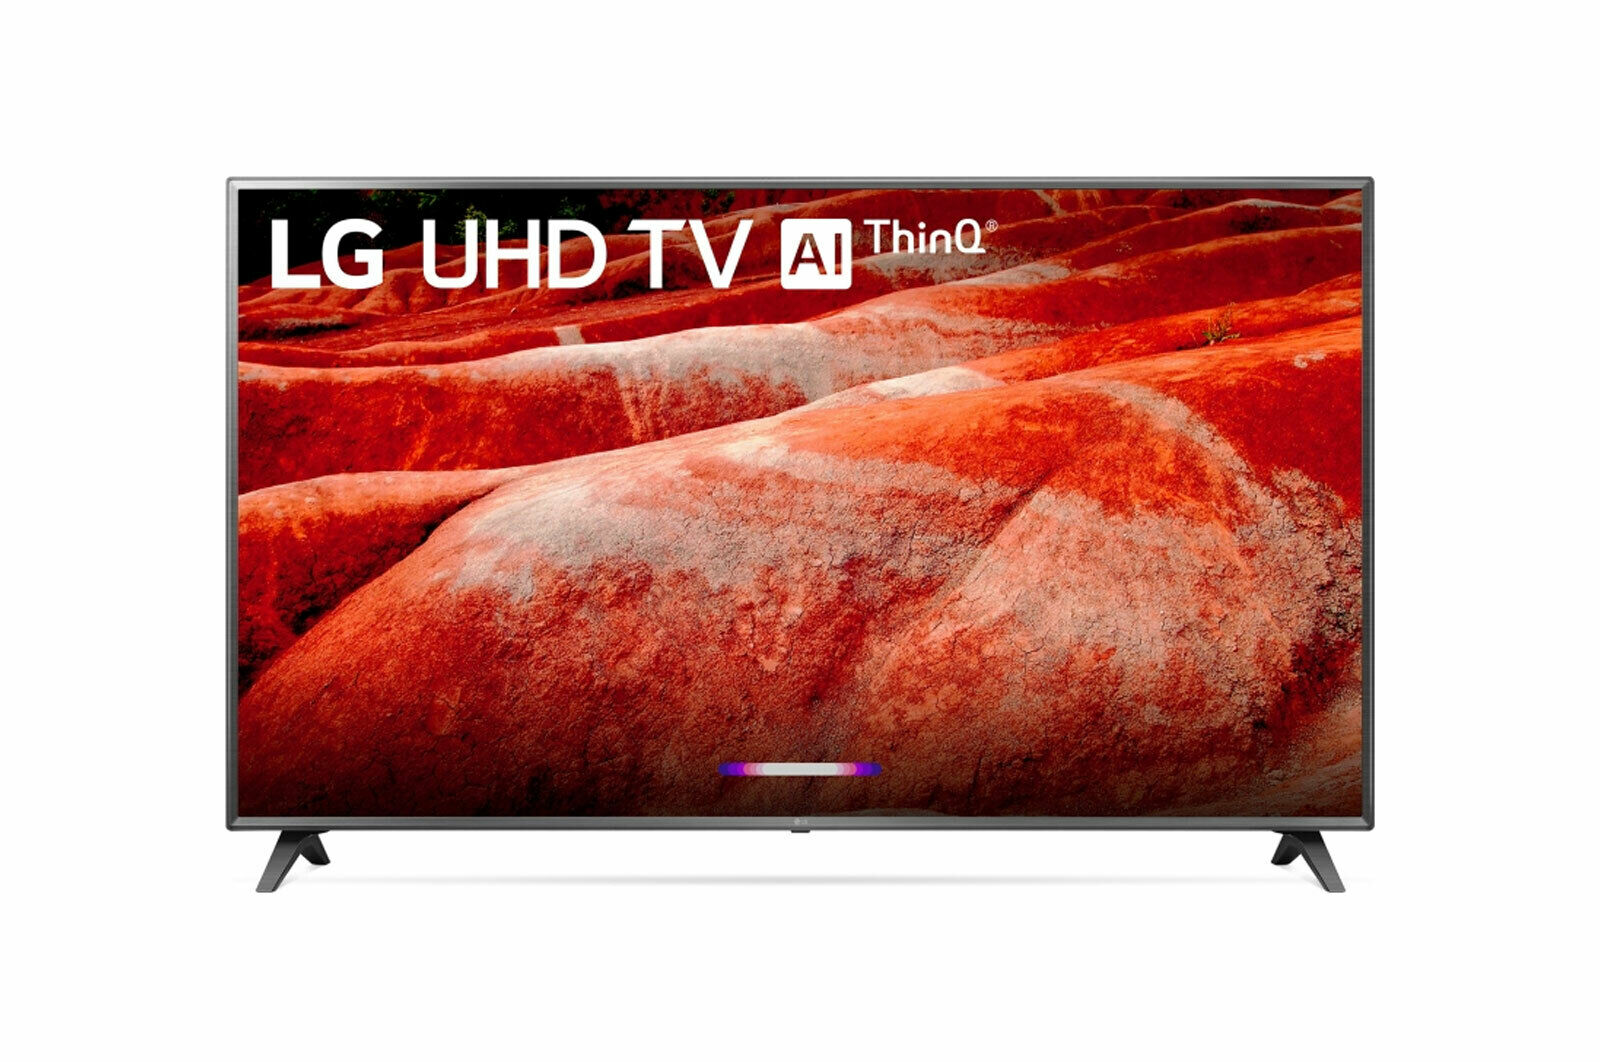 LG 75UM7570PUD 75 inch Class w/AI ThinQ webOS 4K Smart UHD TV. Available Now for 999.99